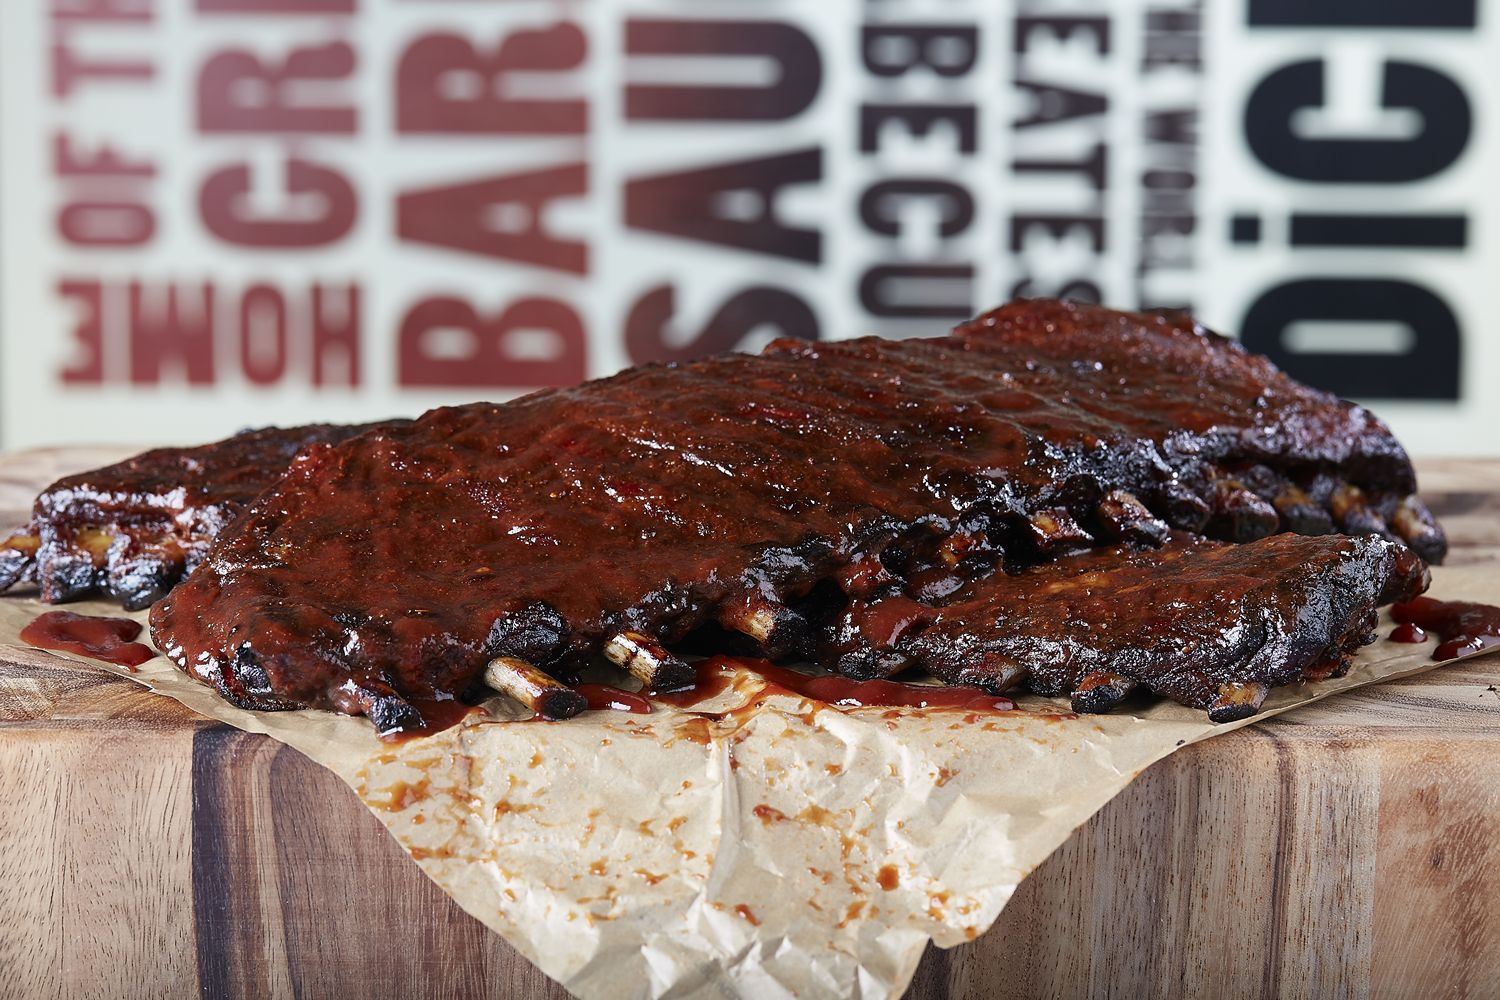 Dickey's Barbecue Pit Set to Sell Over 10,000 Racks of Ribs Father's Day Weekend